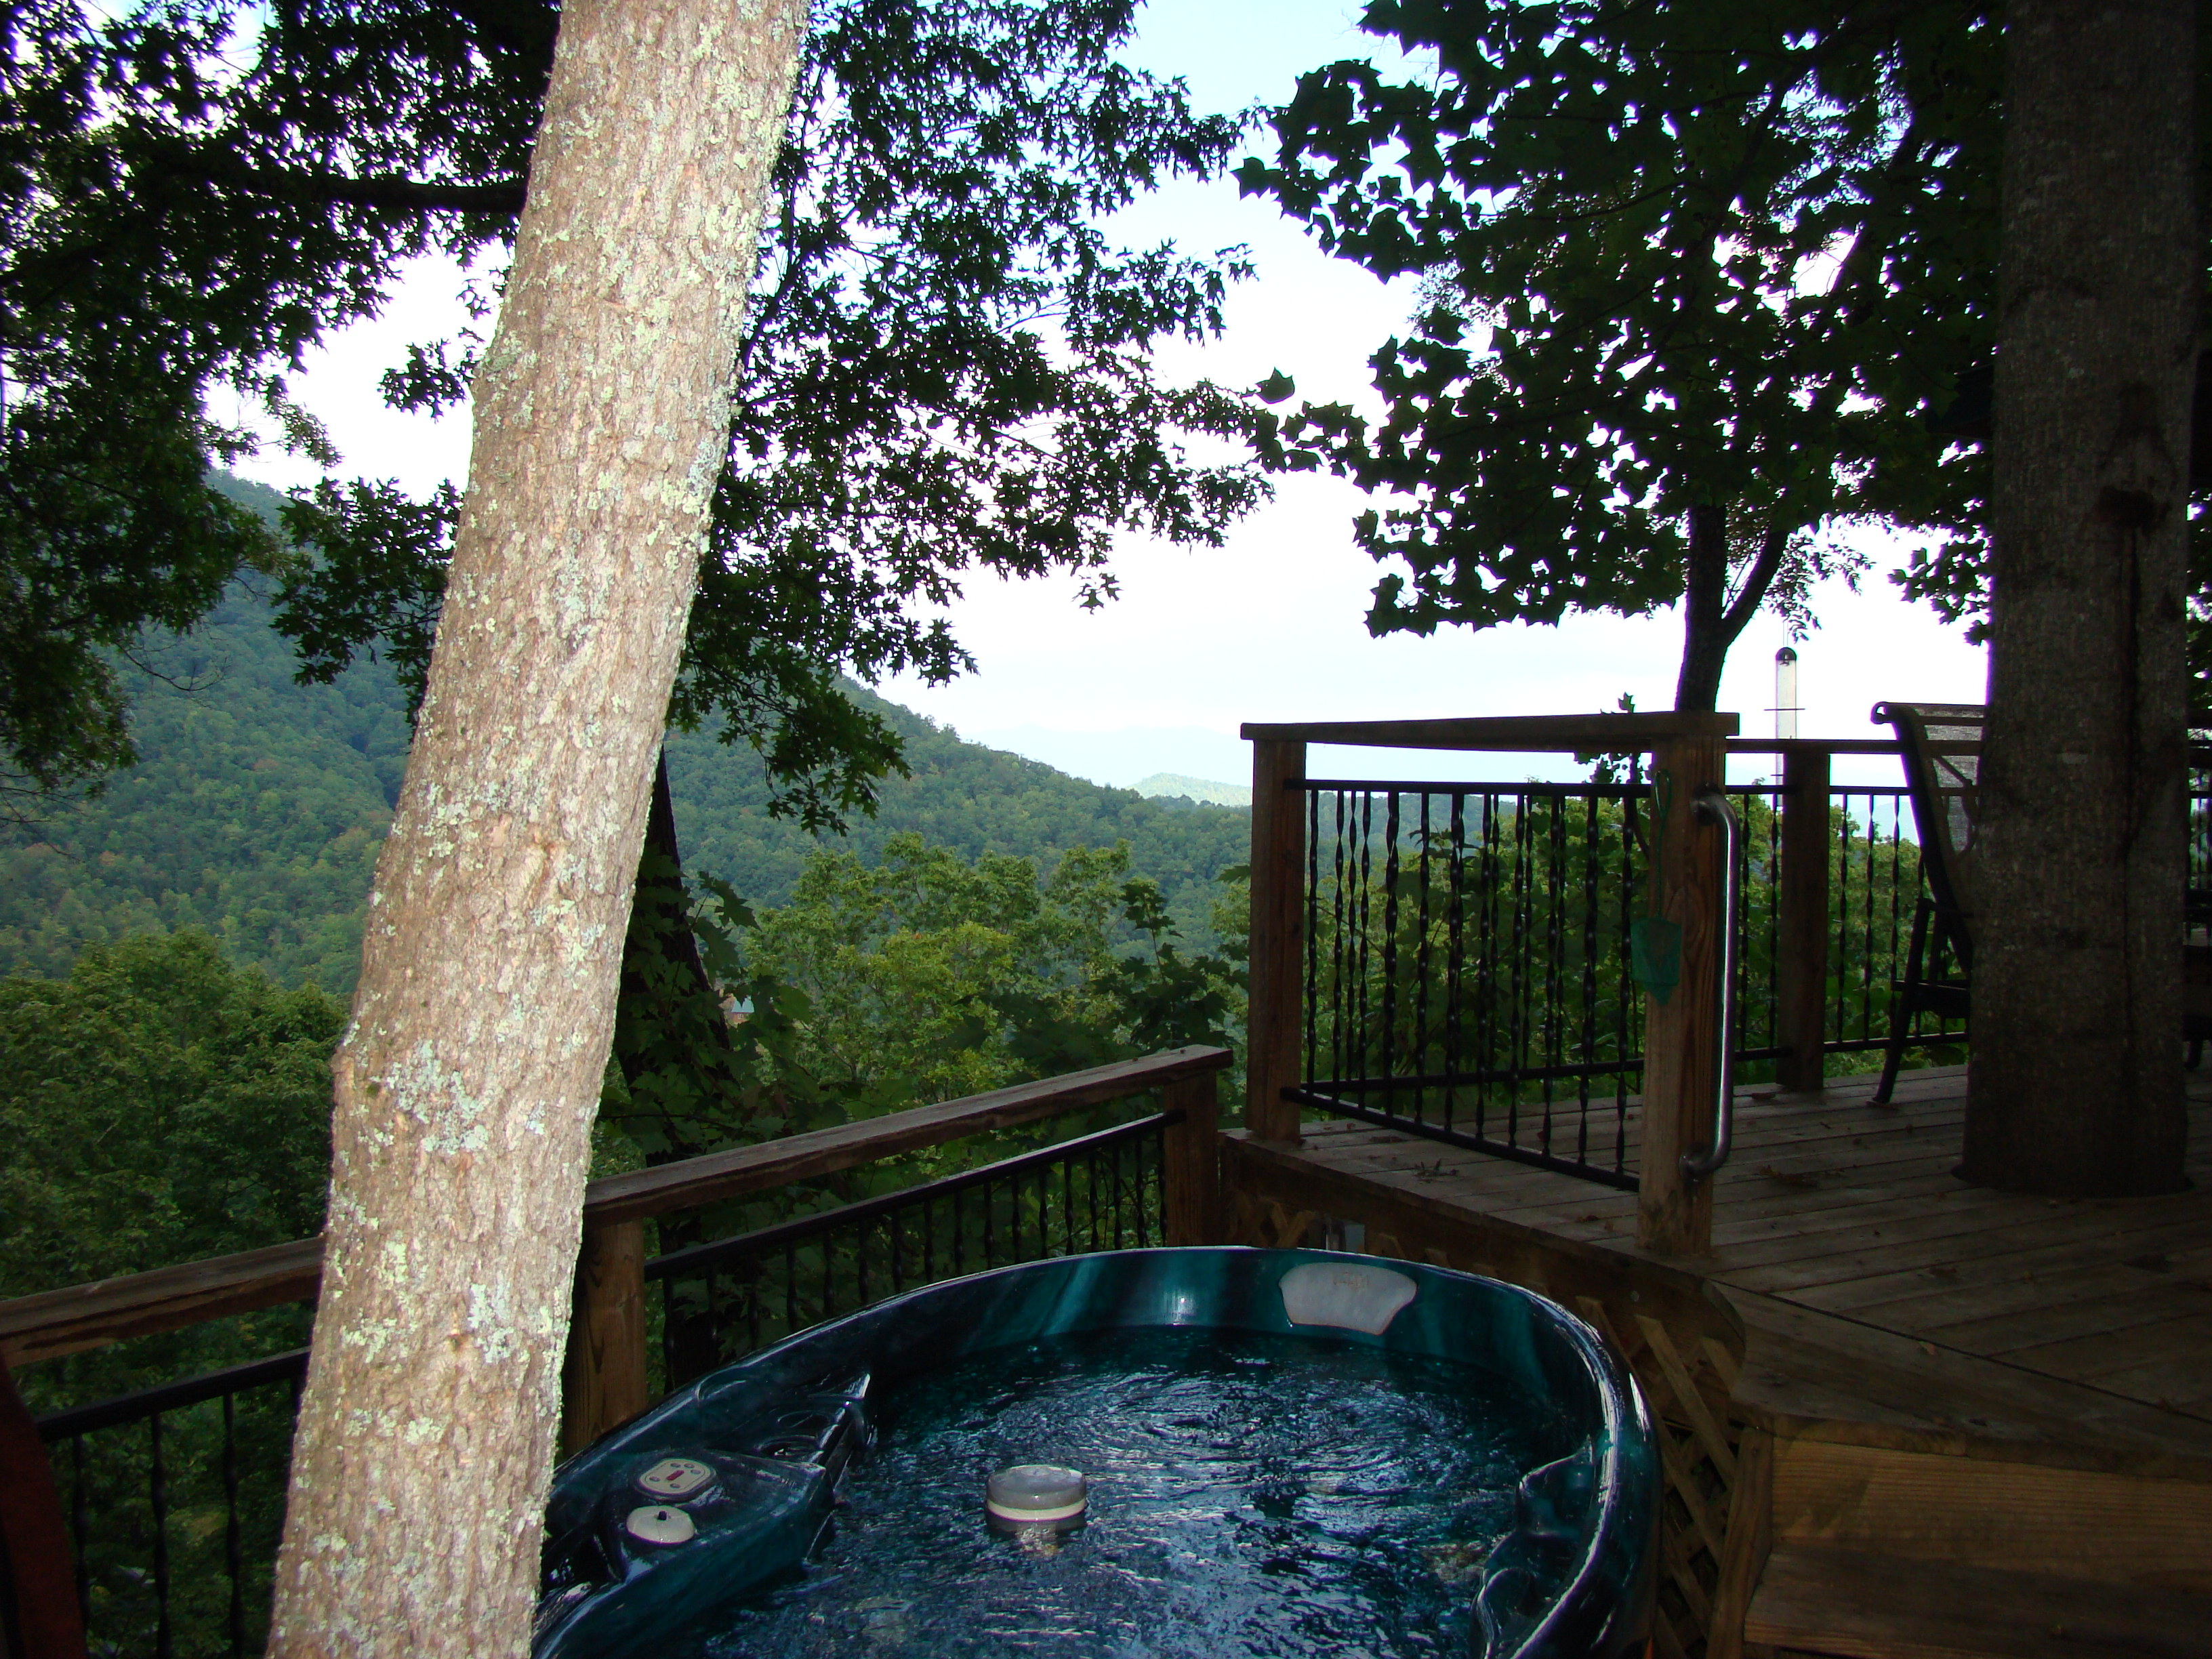 rent lake jacuzzi big cabins rental california wv with in tub cabin deals for hot sale log lakefront bear